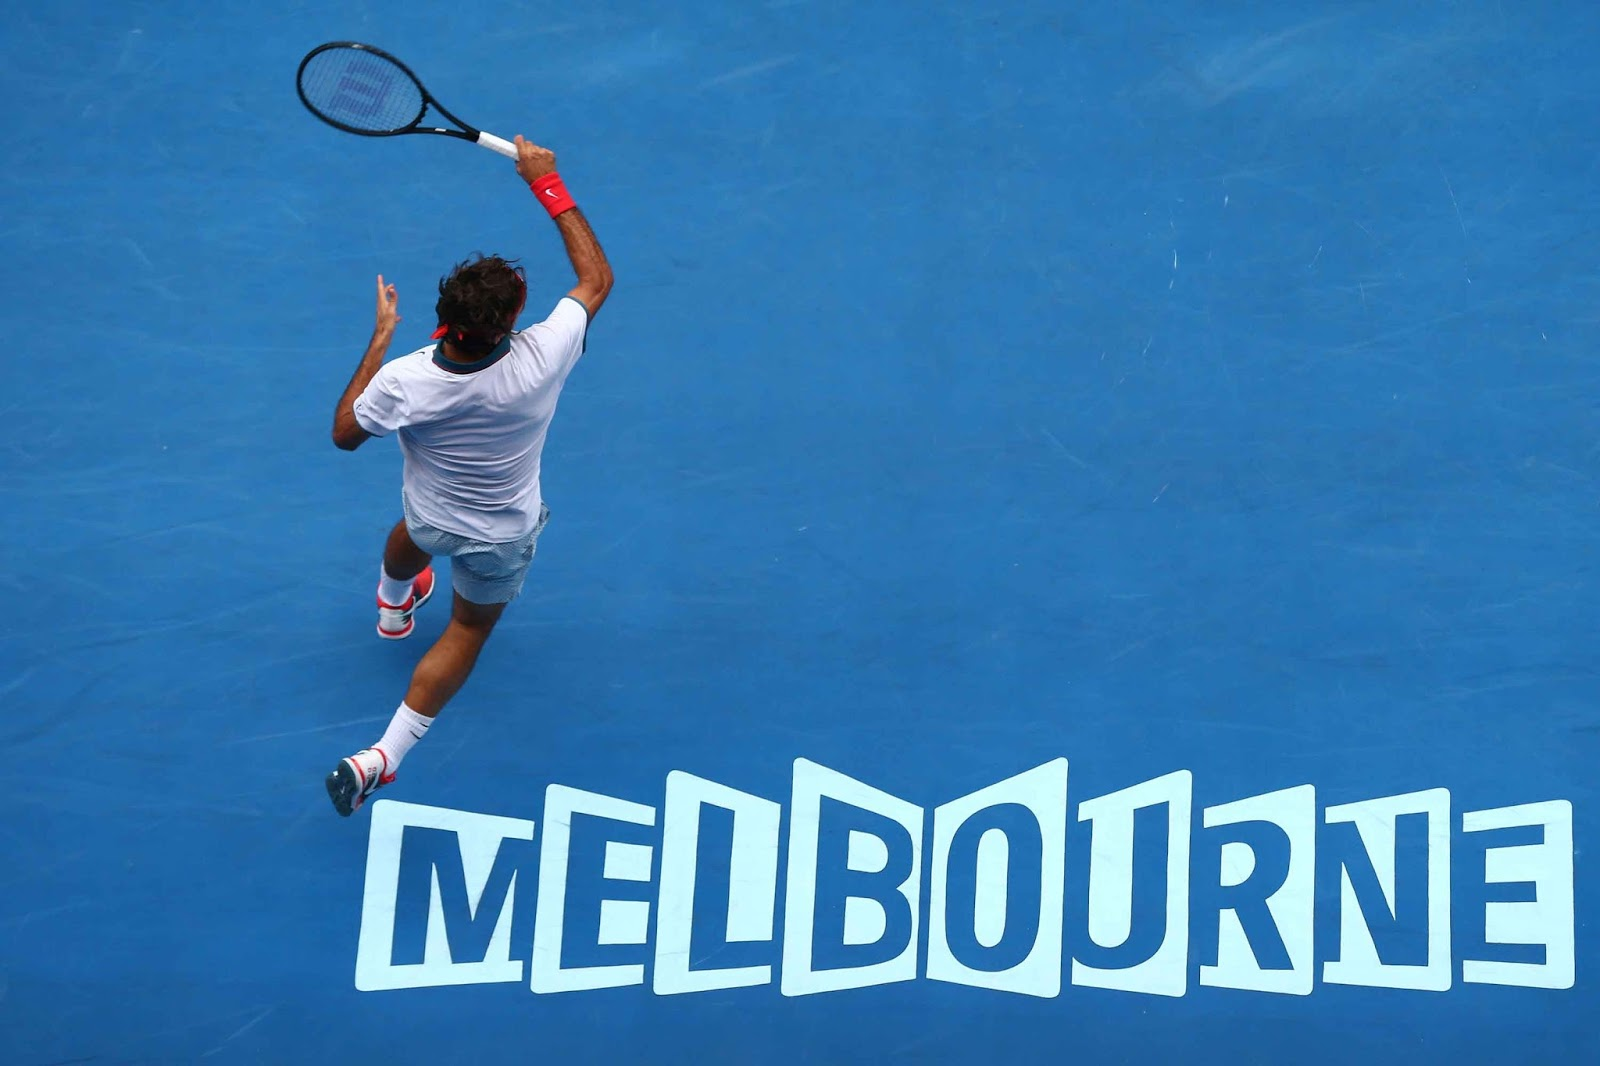 Australian open 2018 tv official broadcasters venue stopboris Images